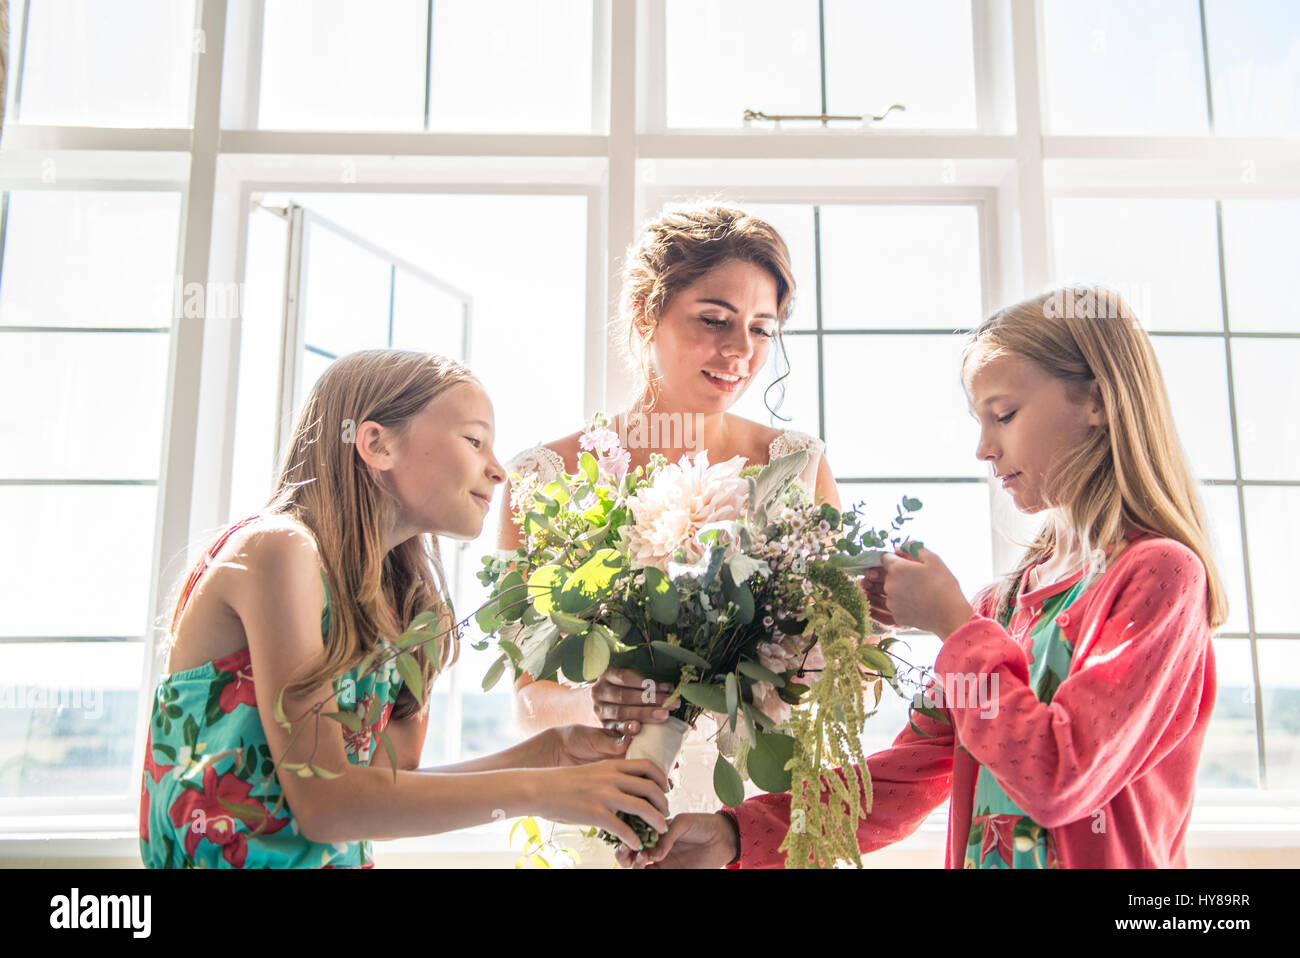 A bride with her twin bridesmaids holding a bouquet of flowers prior to her wedding Stock Photo